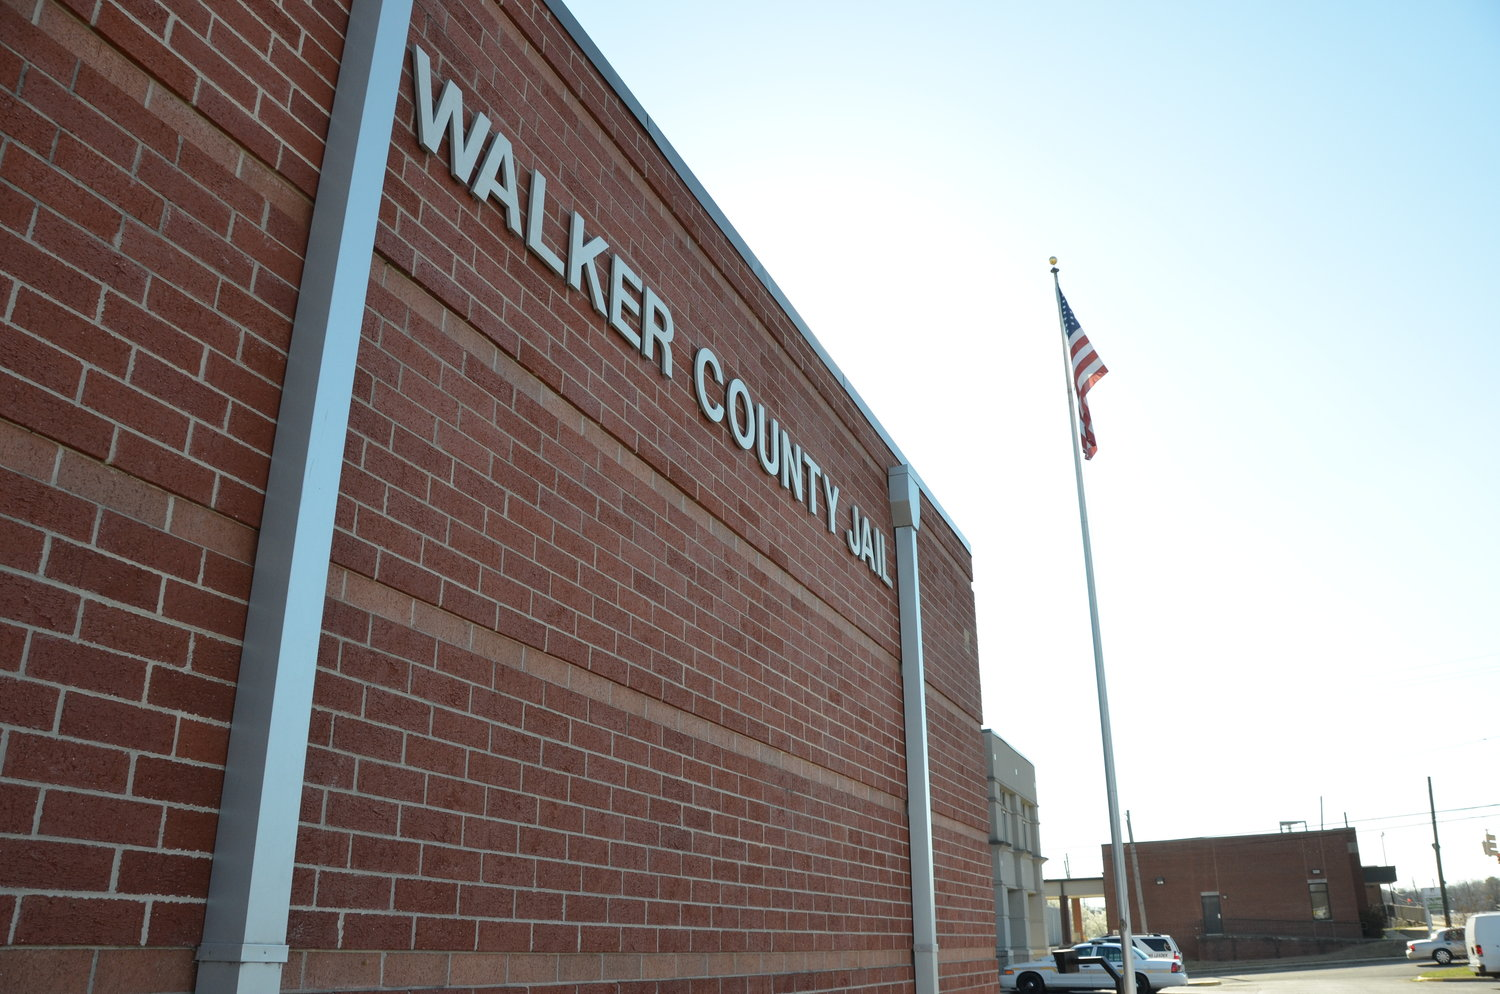 An inmate and three employees of the Walker County Sheriff's Office have tested positive for COVID-19